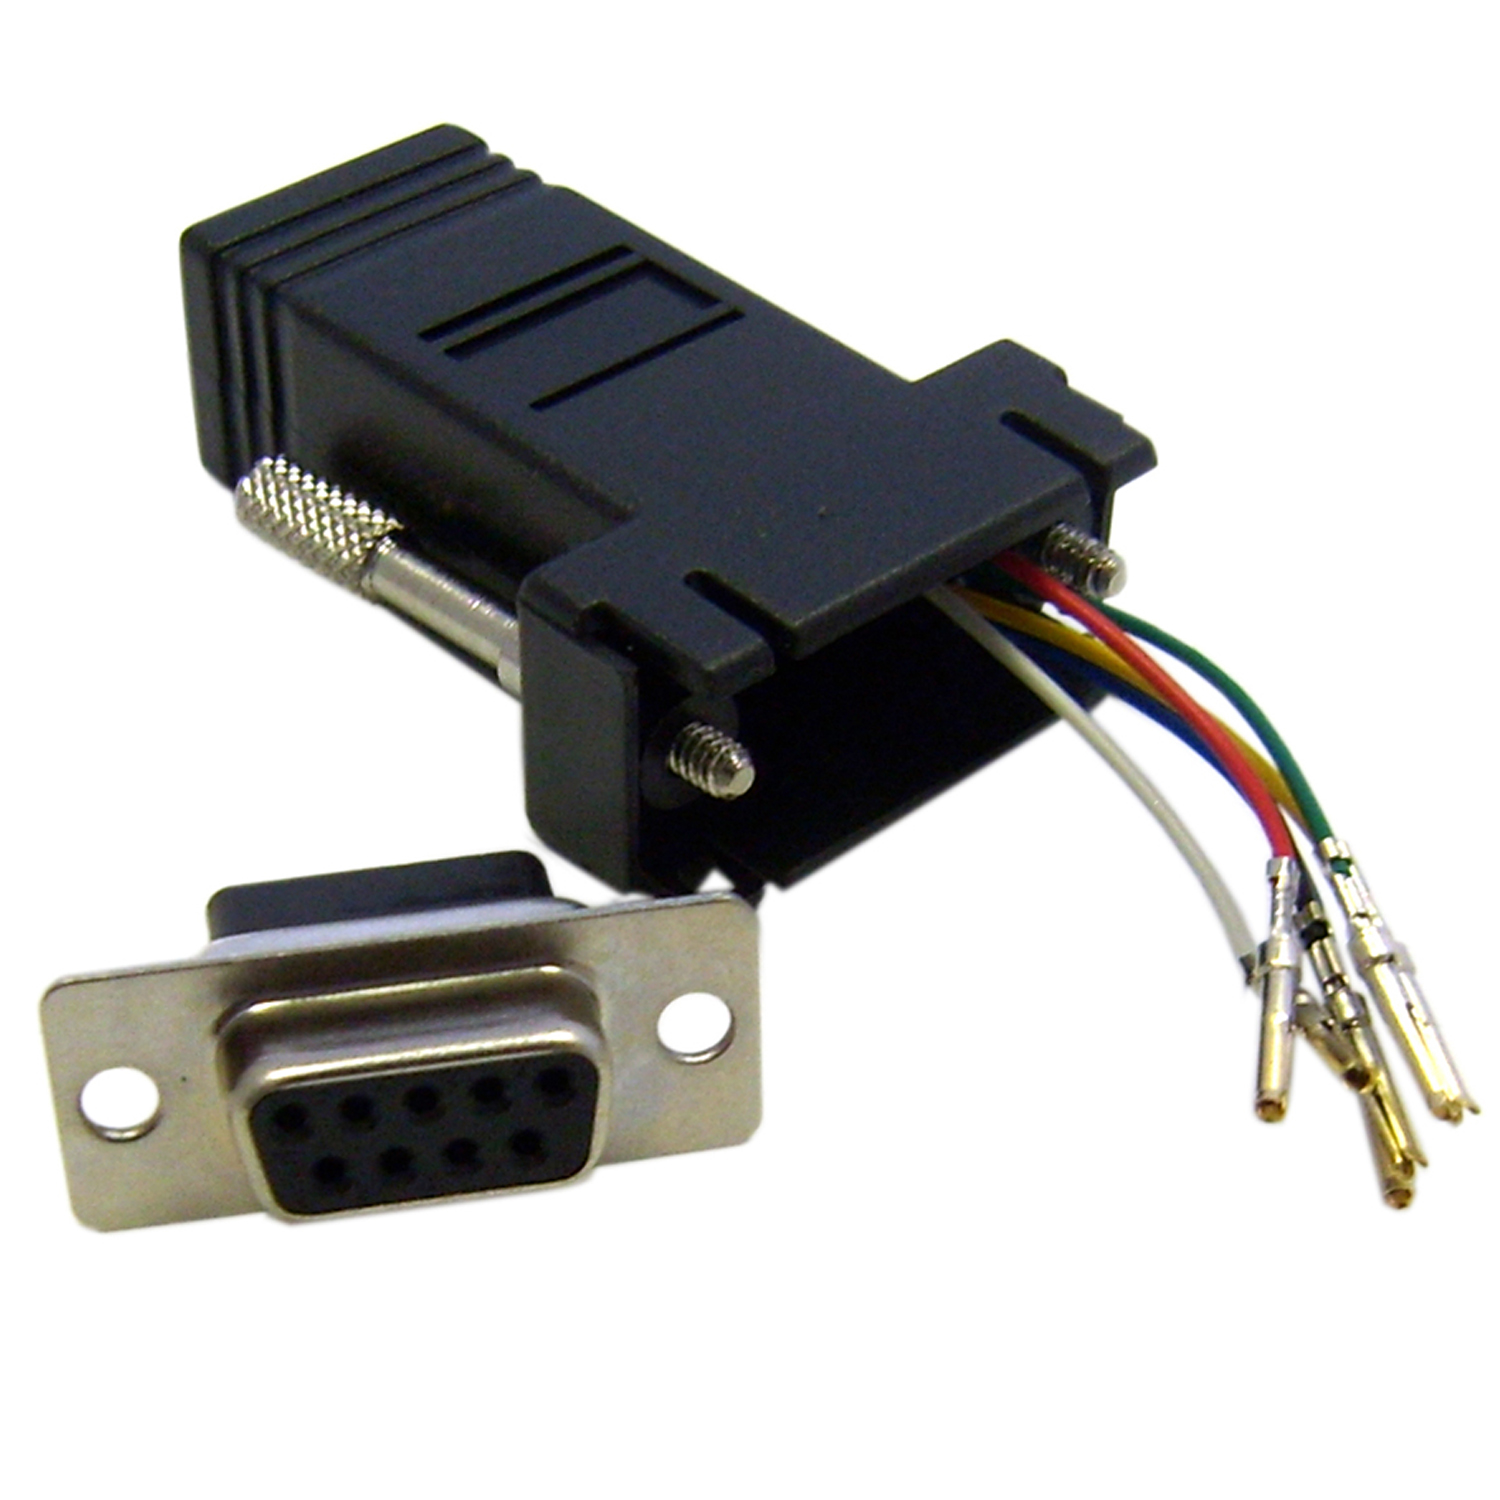 hight resolution of wrg 1615 rj12 jack wiring modular adapter black db9 female to rj12 jack